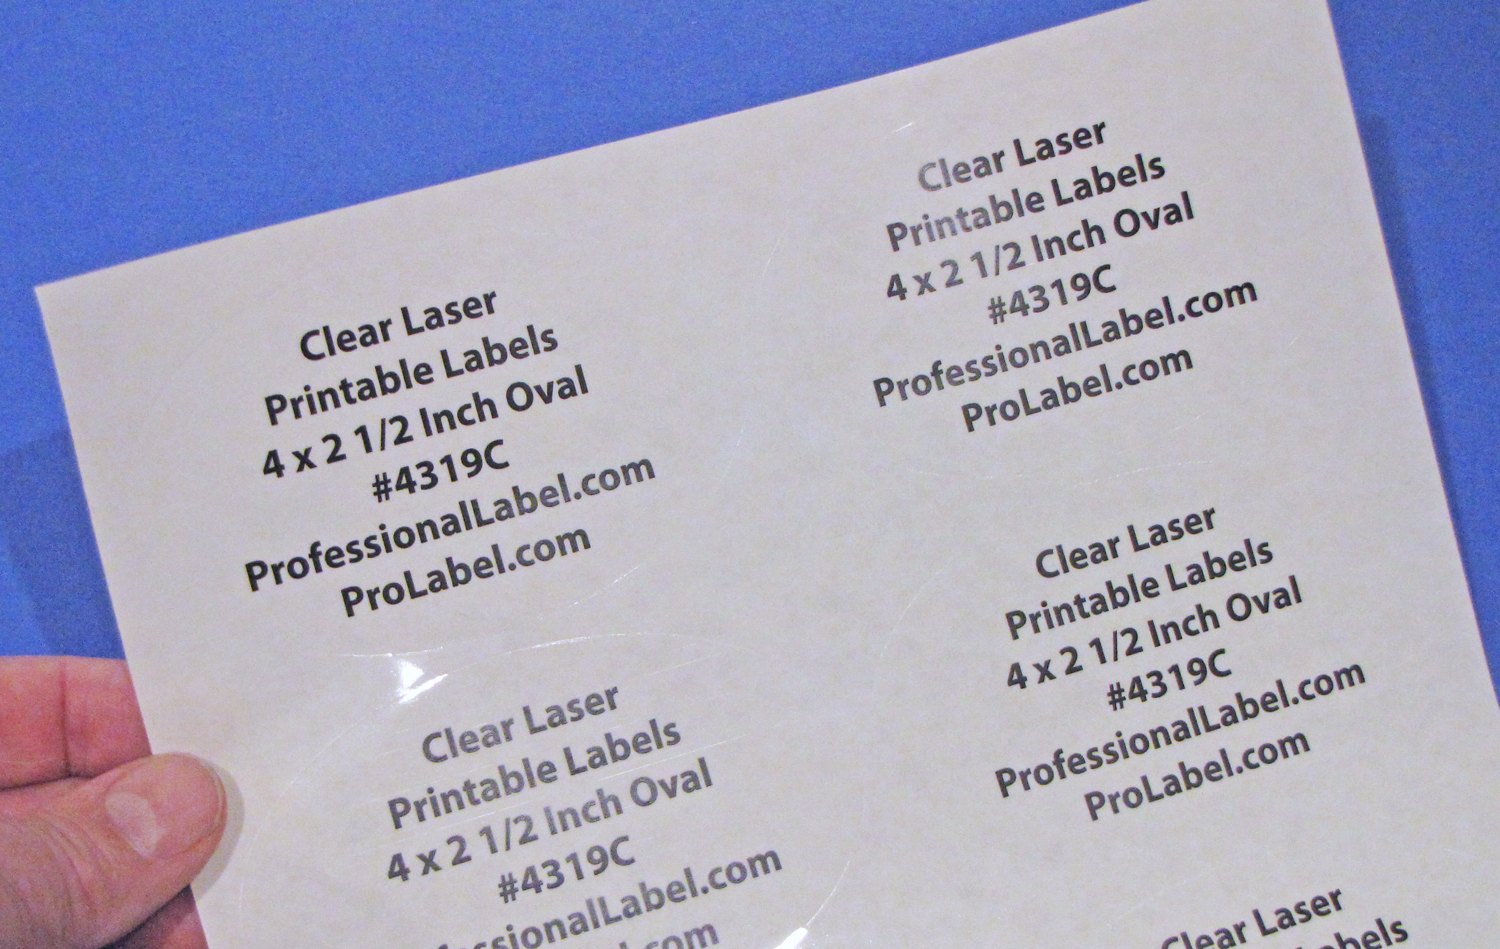 photo relating to Printable Clear Labels named Oval 4 x 2 1/2 inch Obvious Shiny Laser Printable Labels 50 Sheets 4319C